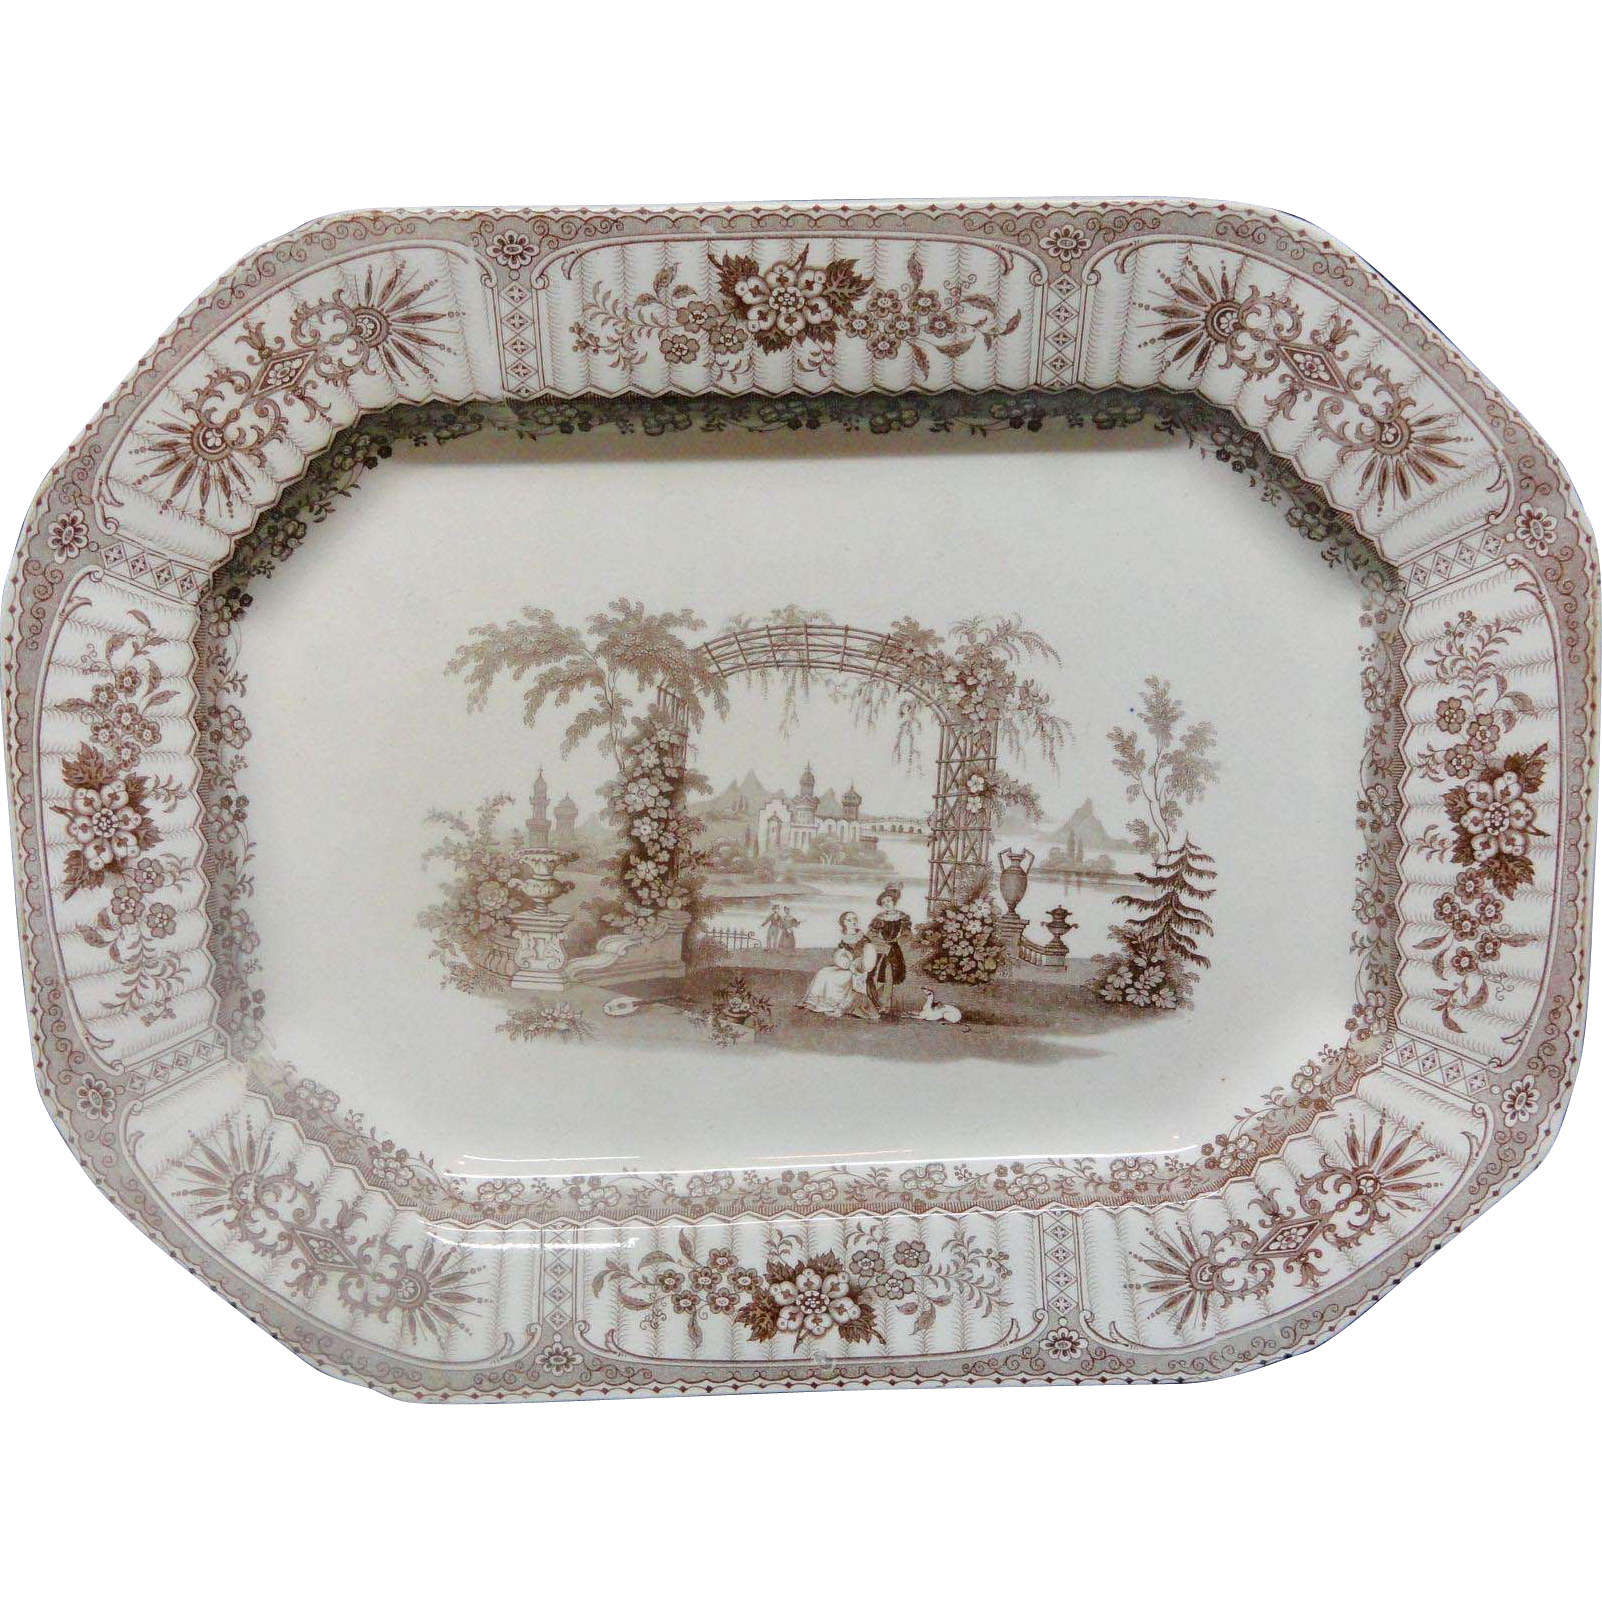 Spectacular Romantic Brown Transferware Staffordshire Platter ~ BOWER 1840